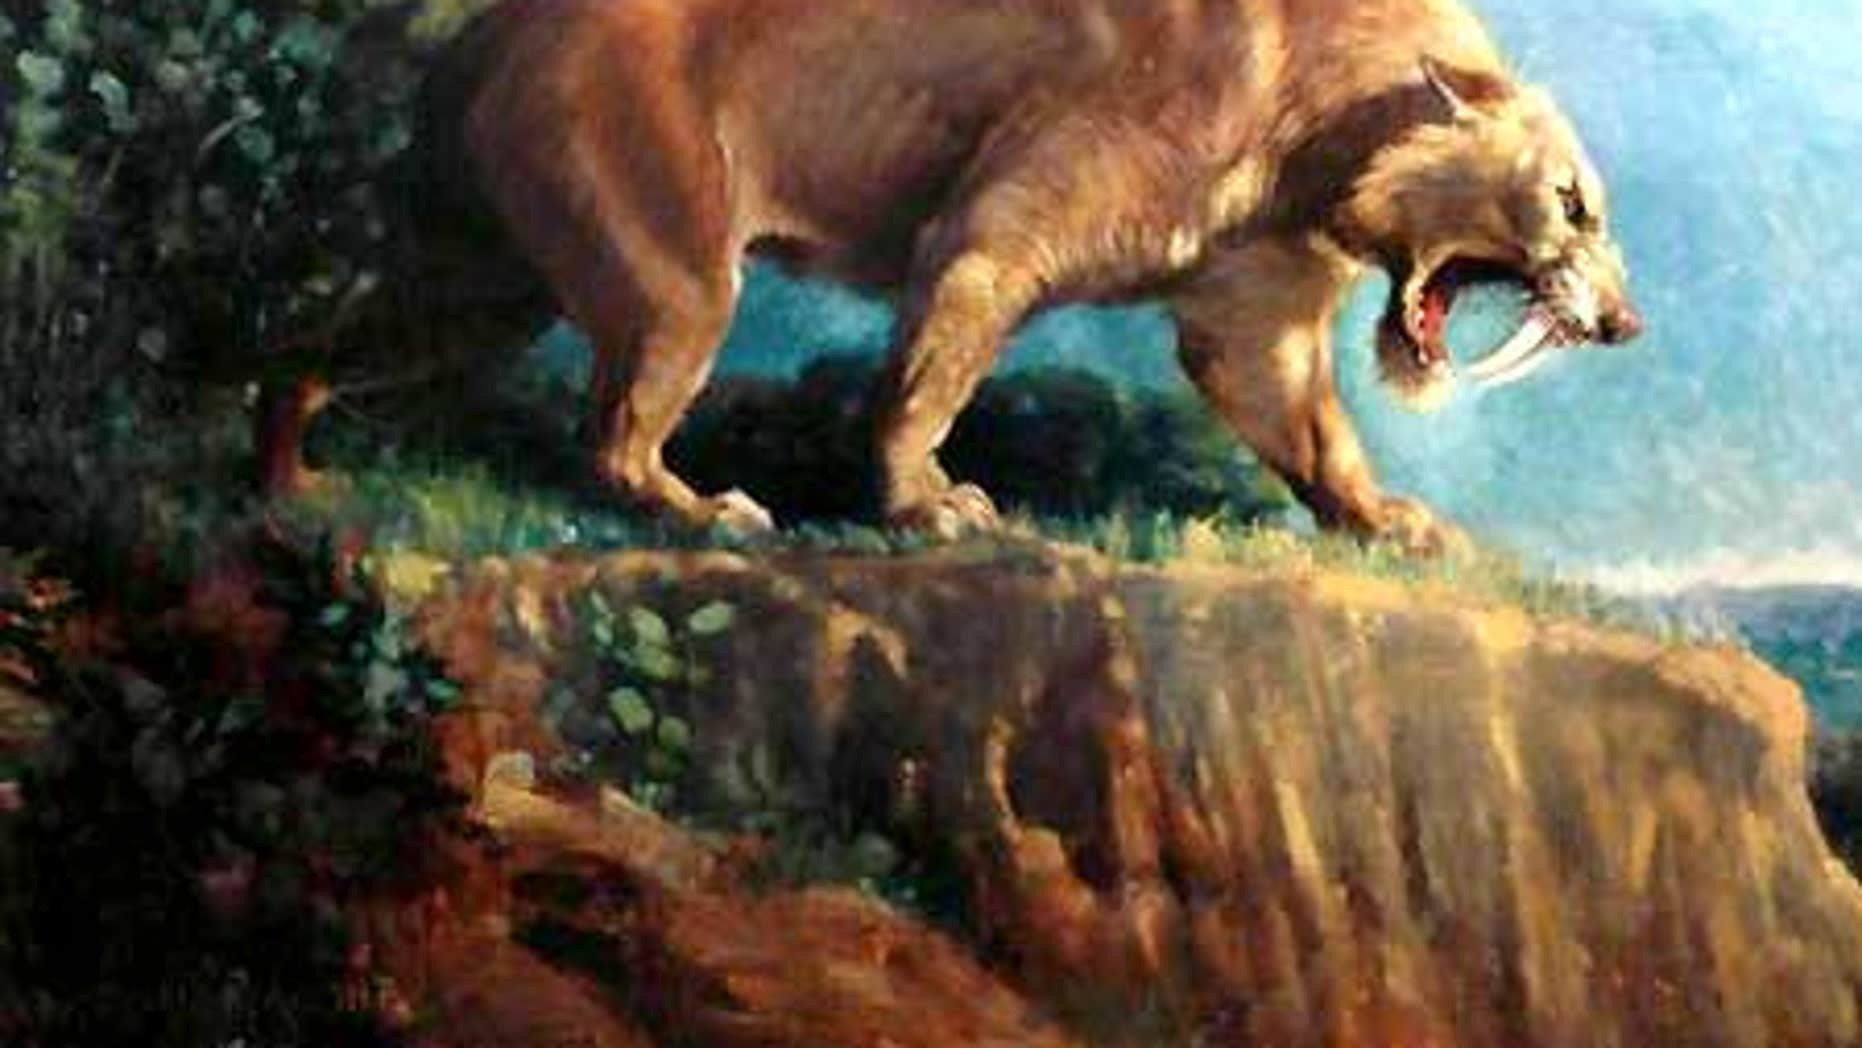 'Smilodon,' a 1905 painting by Charles R. Knight depicting a saber-tooth cat.